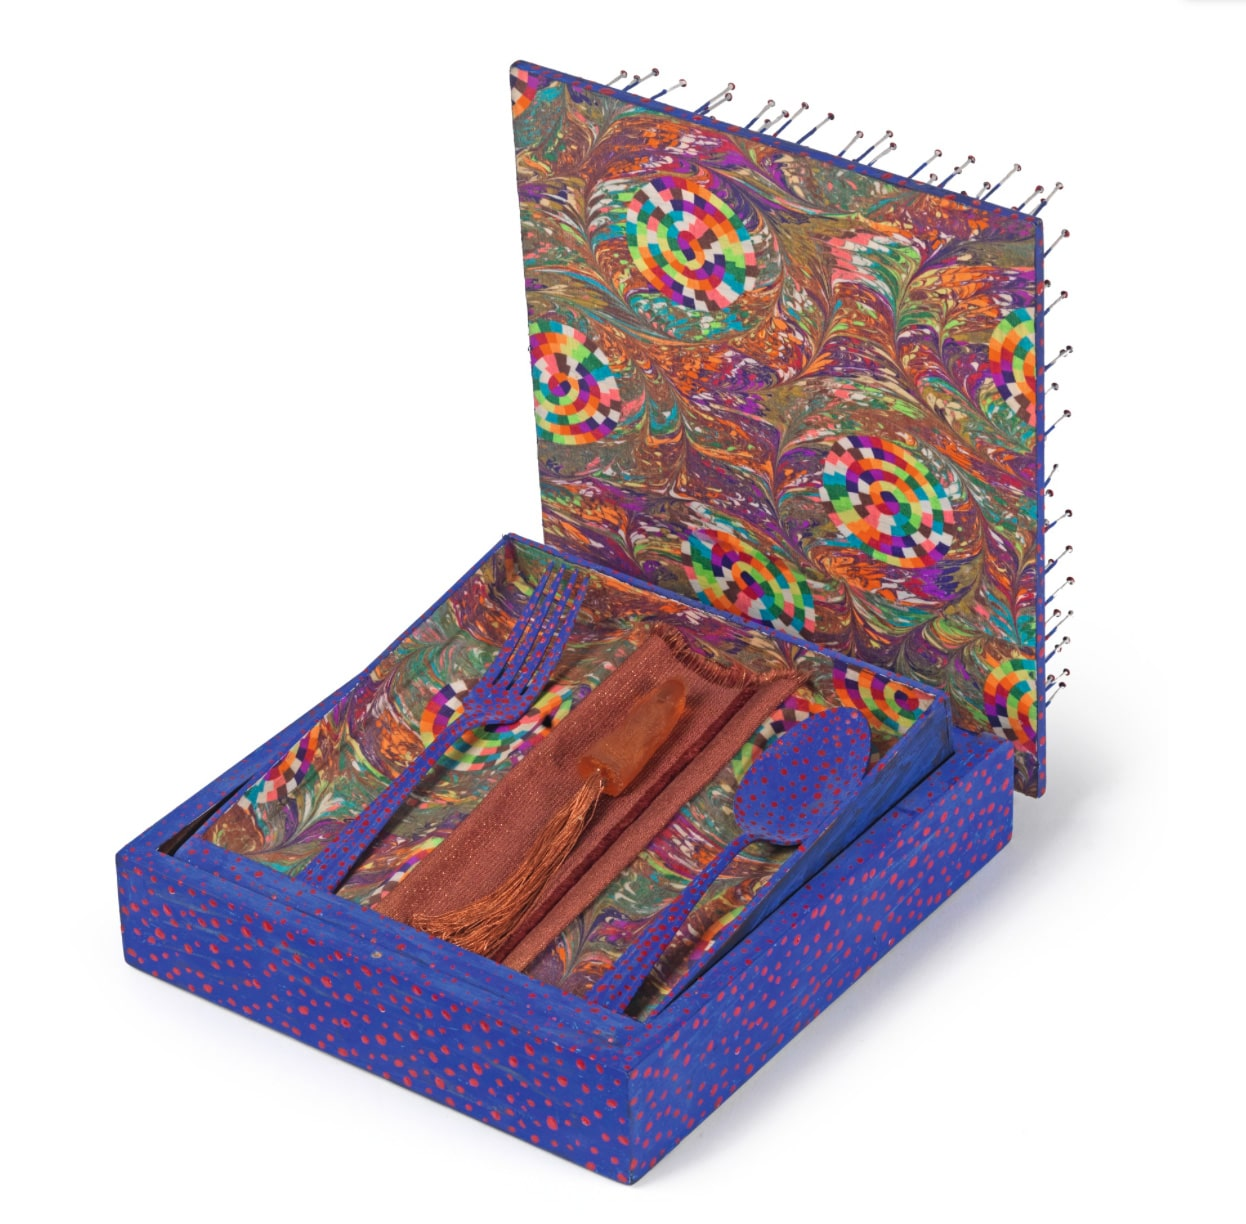 1977 Lucas Samaras Sculpture Colorful Box with Fork Spoon